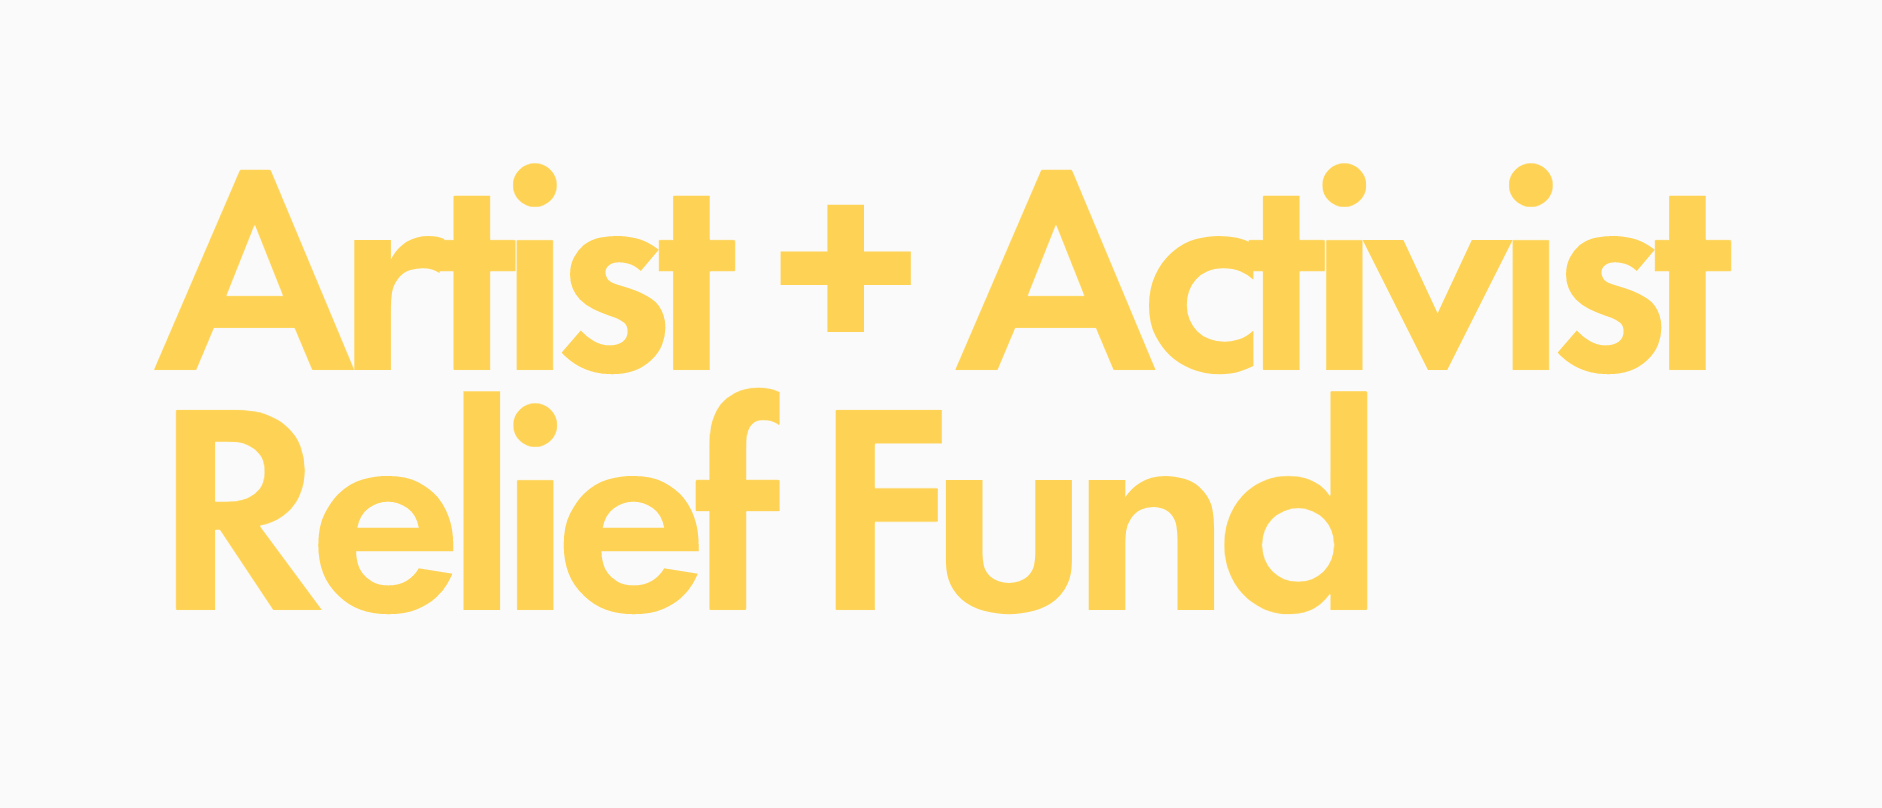 Artists & Activist Relief Fund